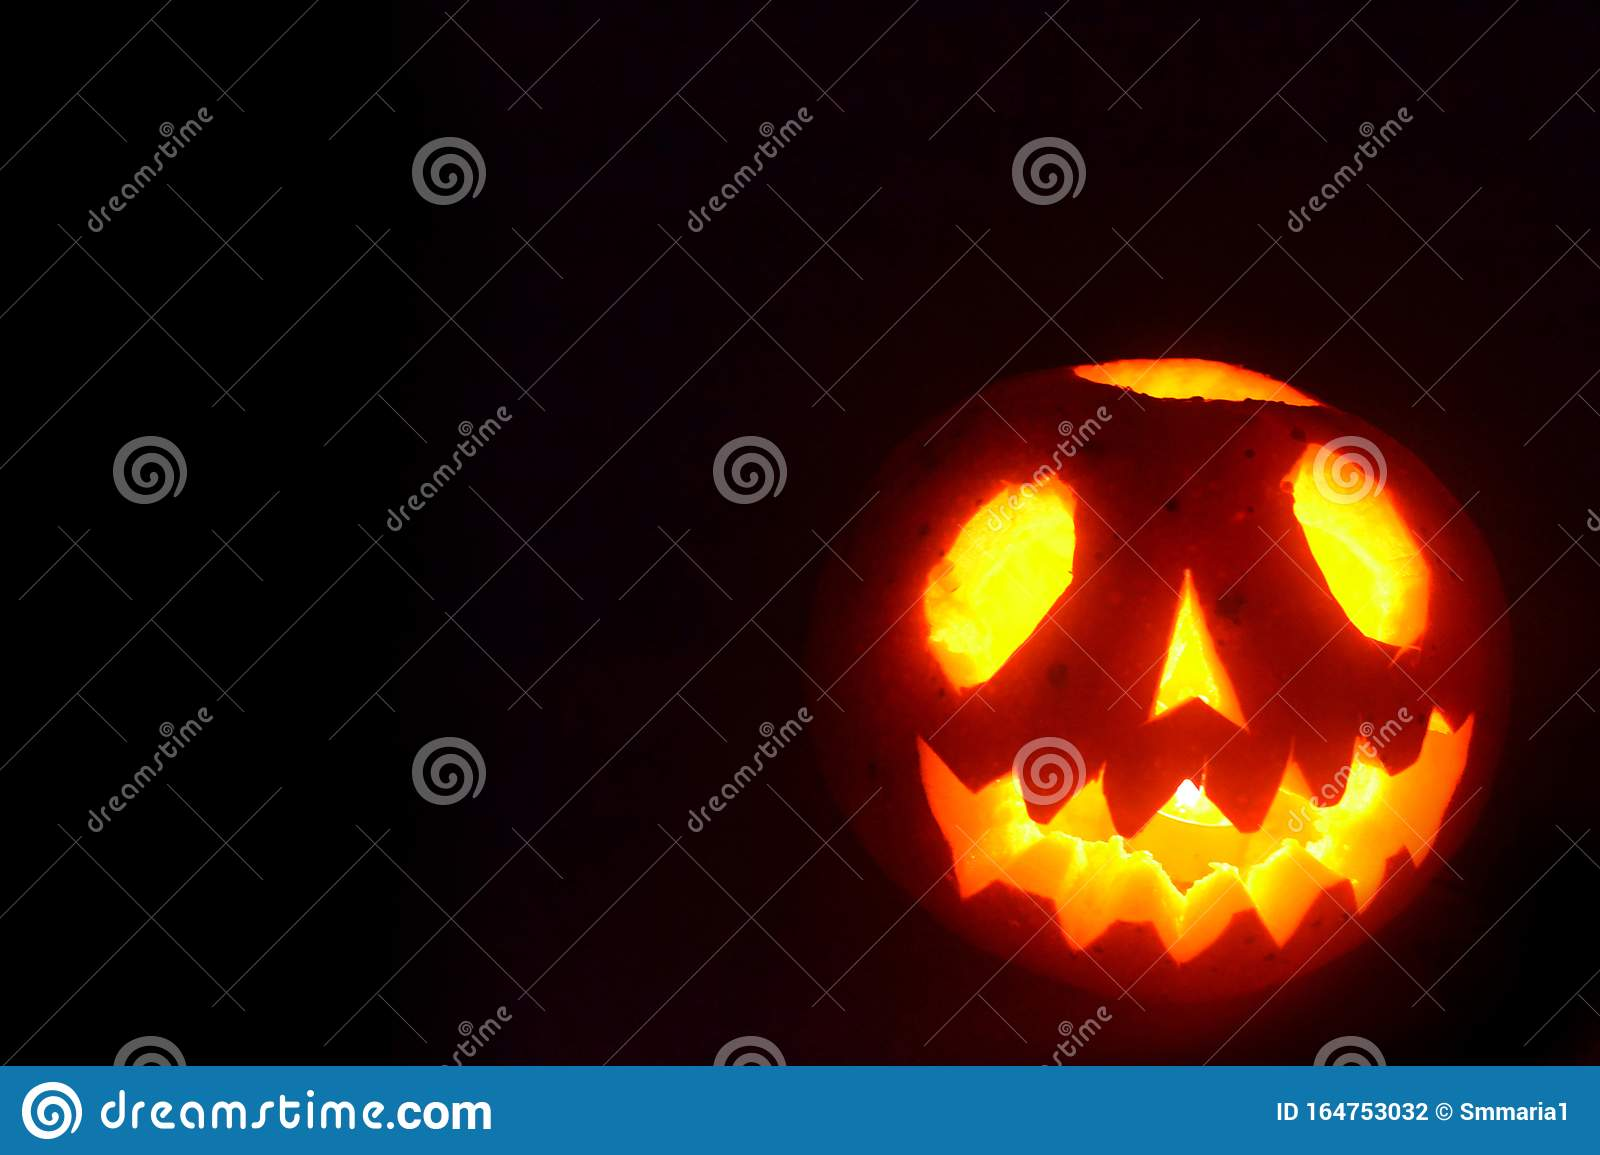 Black Halloween Background With A Glowing Jack O Lantern Photo Of Scary Pumpkin Stock Photo Image Of Card Festive 164753032